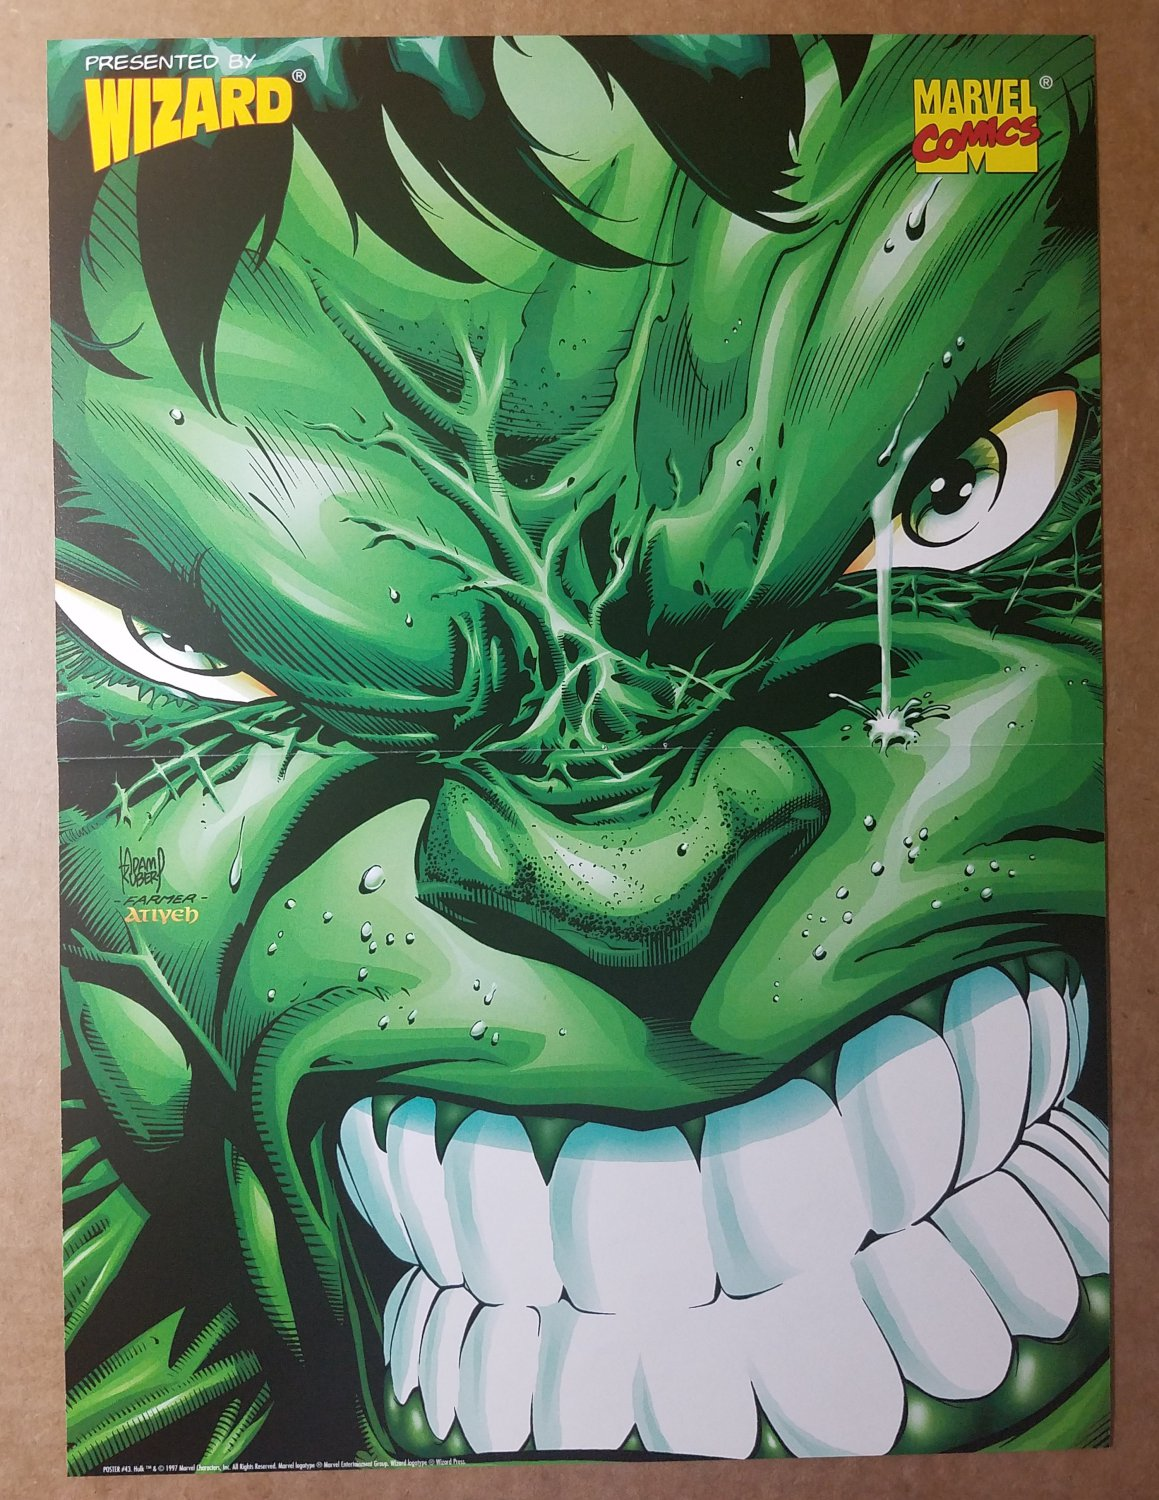 Avengers Hulk Marvel Comics Poster by Andy Kubert